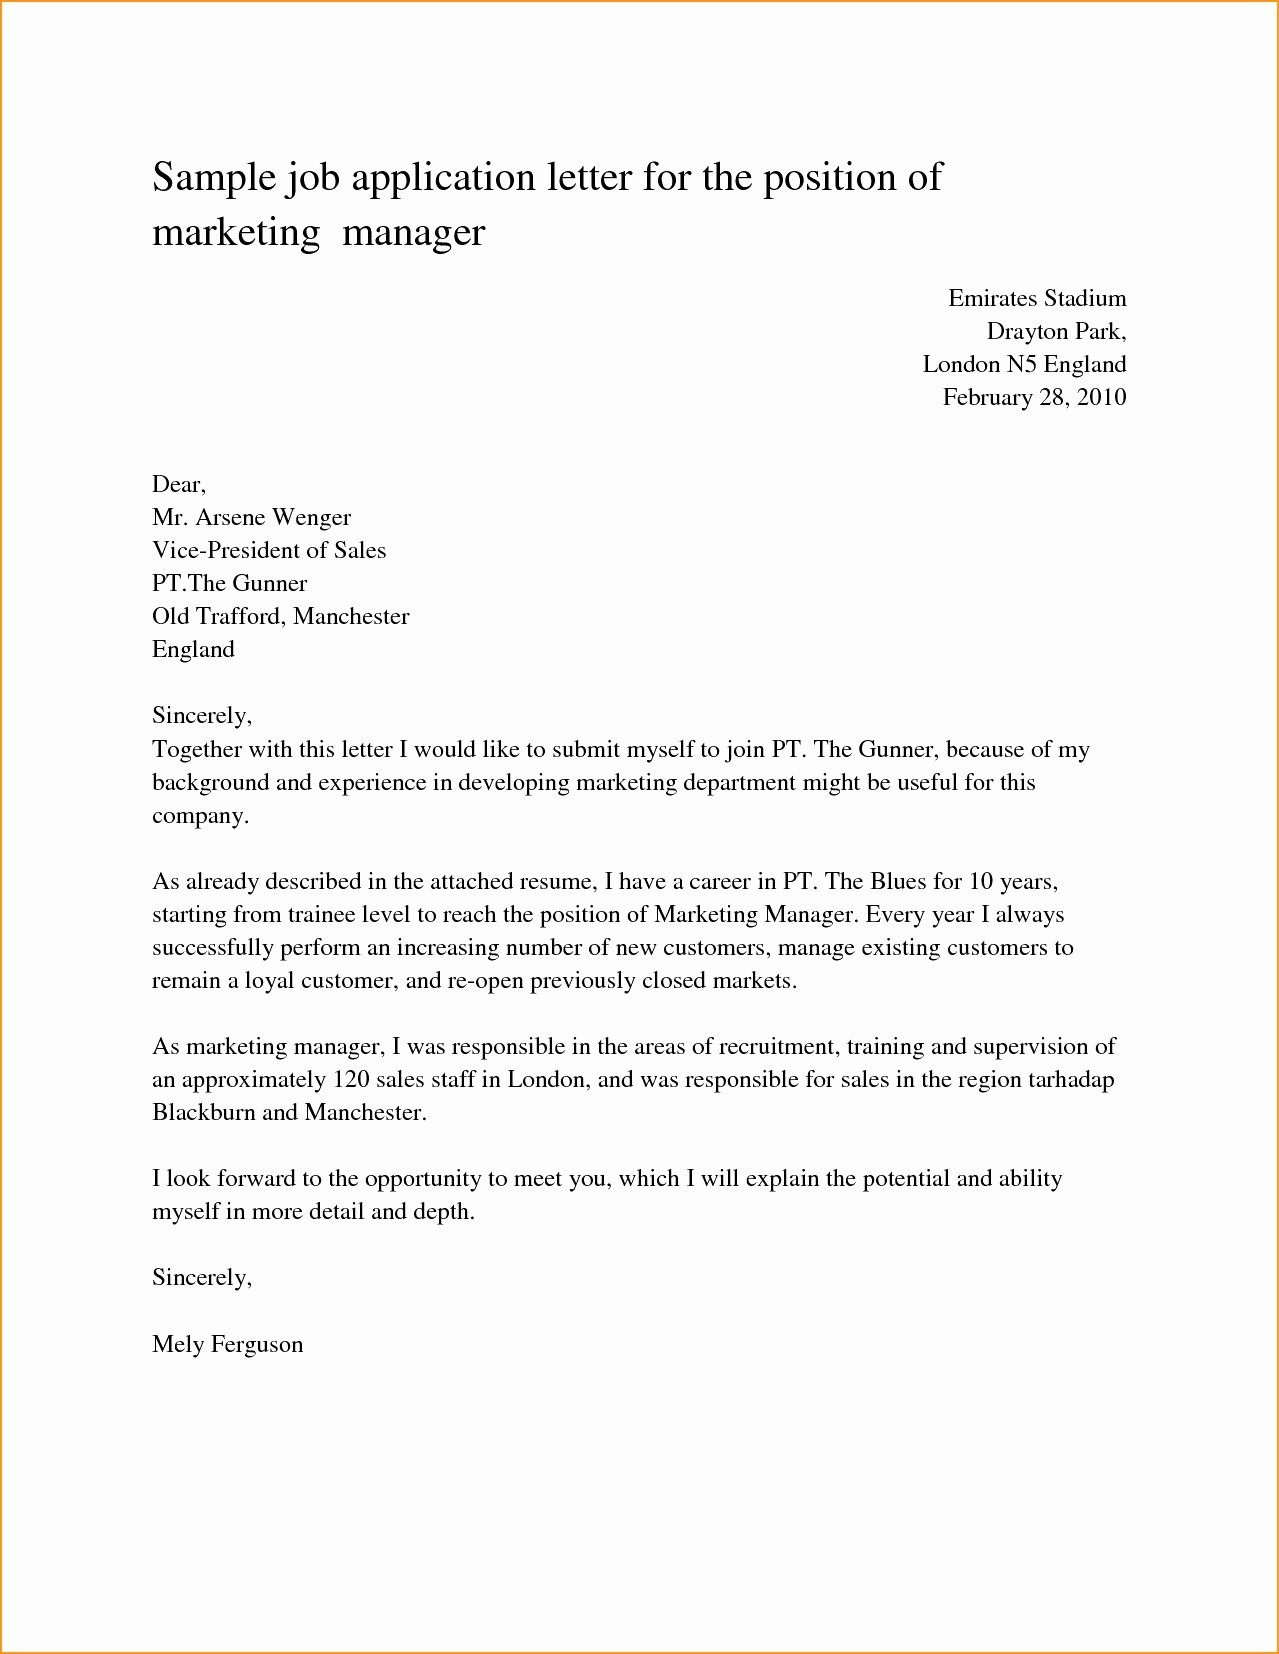 Letter Of Support Template - format for A Resume Awesome Unique Letter Support Sample Template